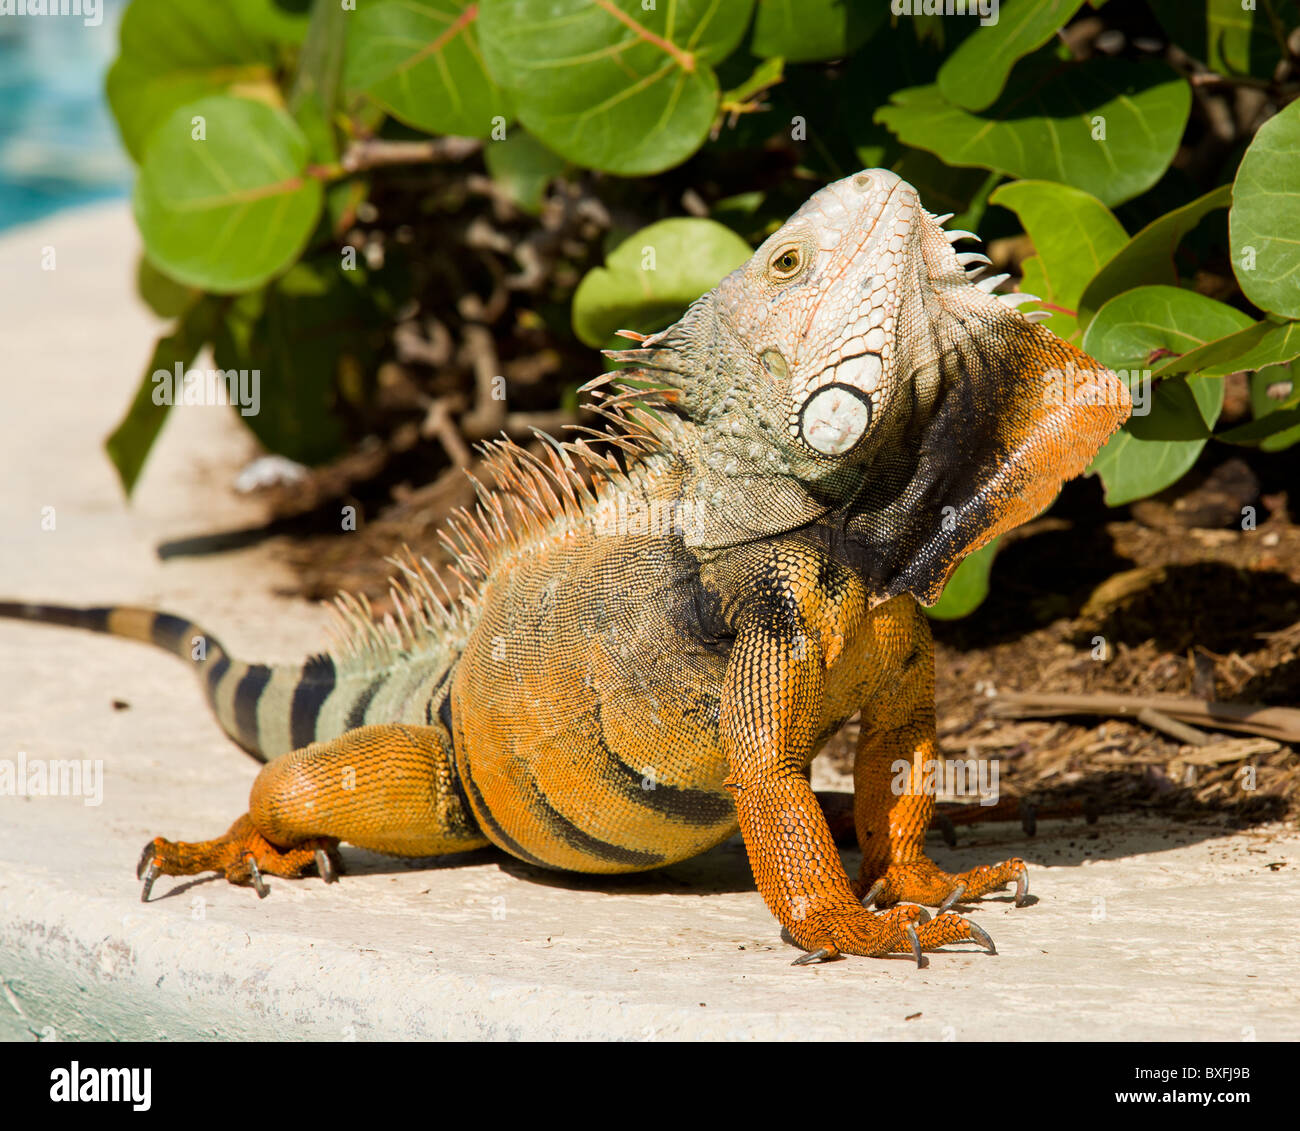 Male iguana doing a mating dance and raising its head to expose its plumage - Stock Image